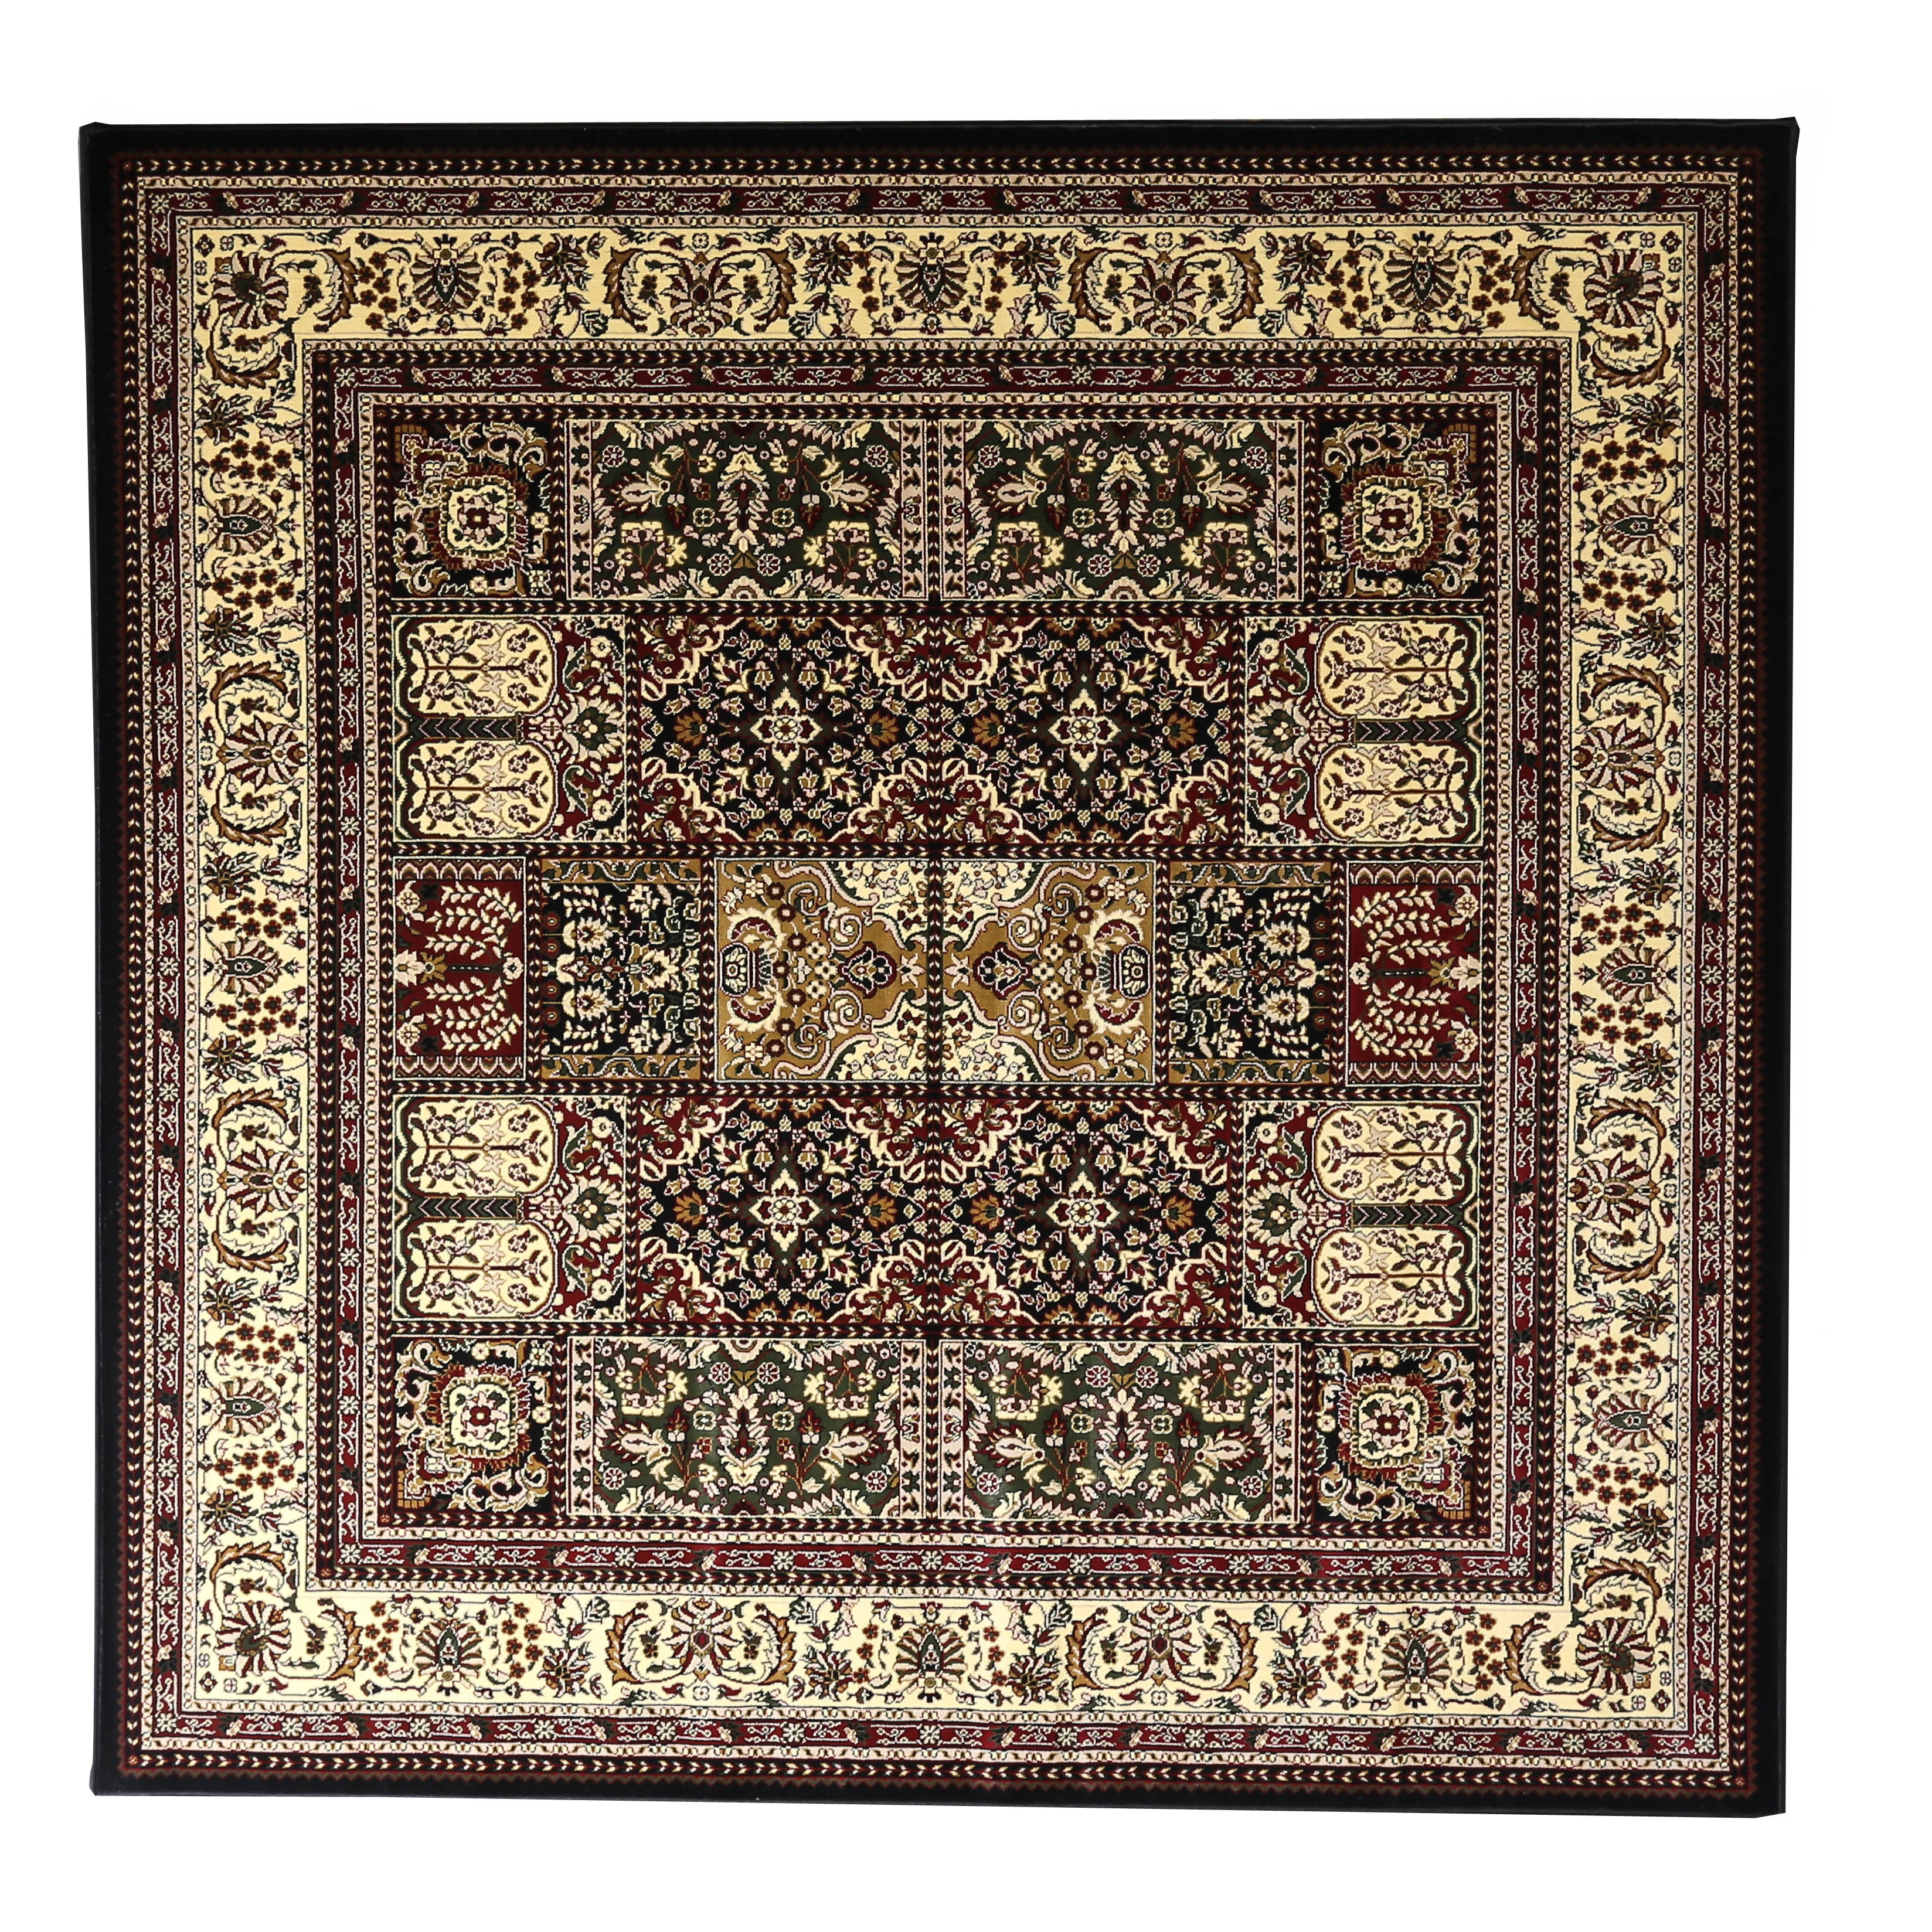 Shop linon persian treasures bakhtiari oriental polypropylene square area rug 8 x 8 8 x 8 on sale free shipping today overstock com 10364191